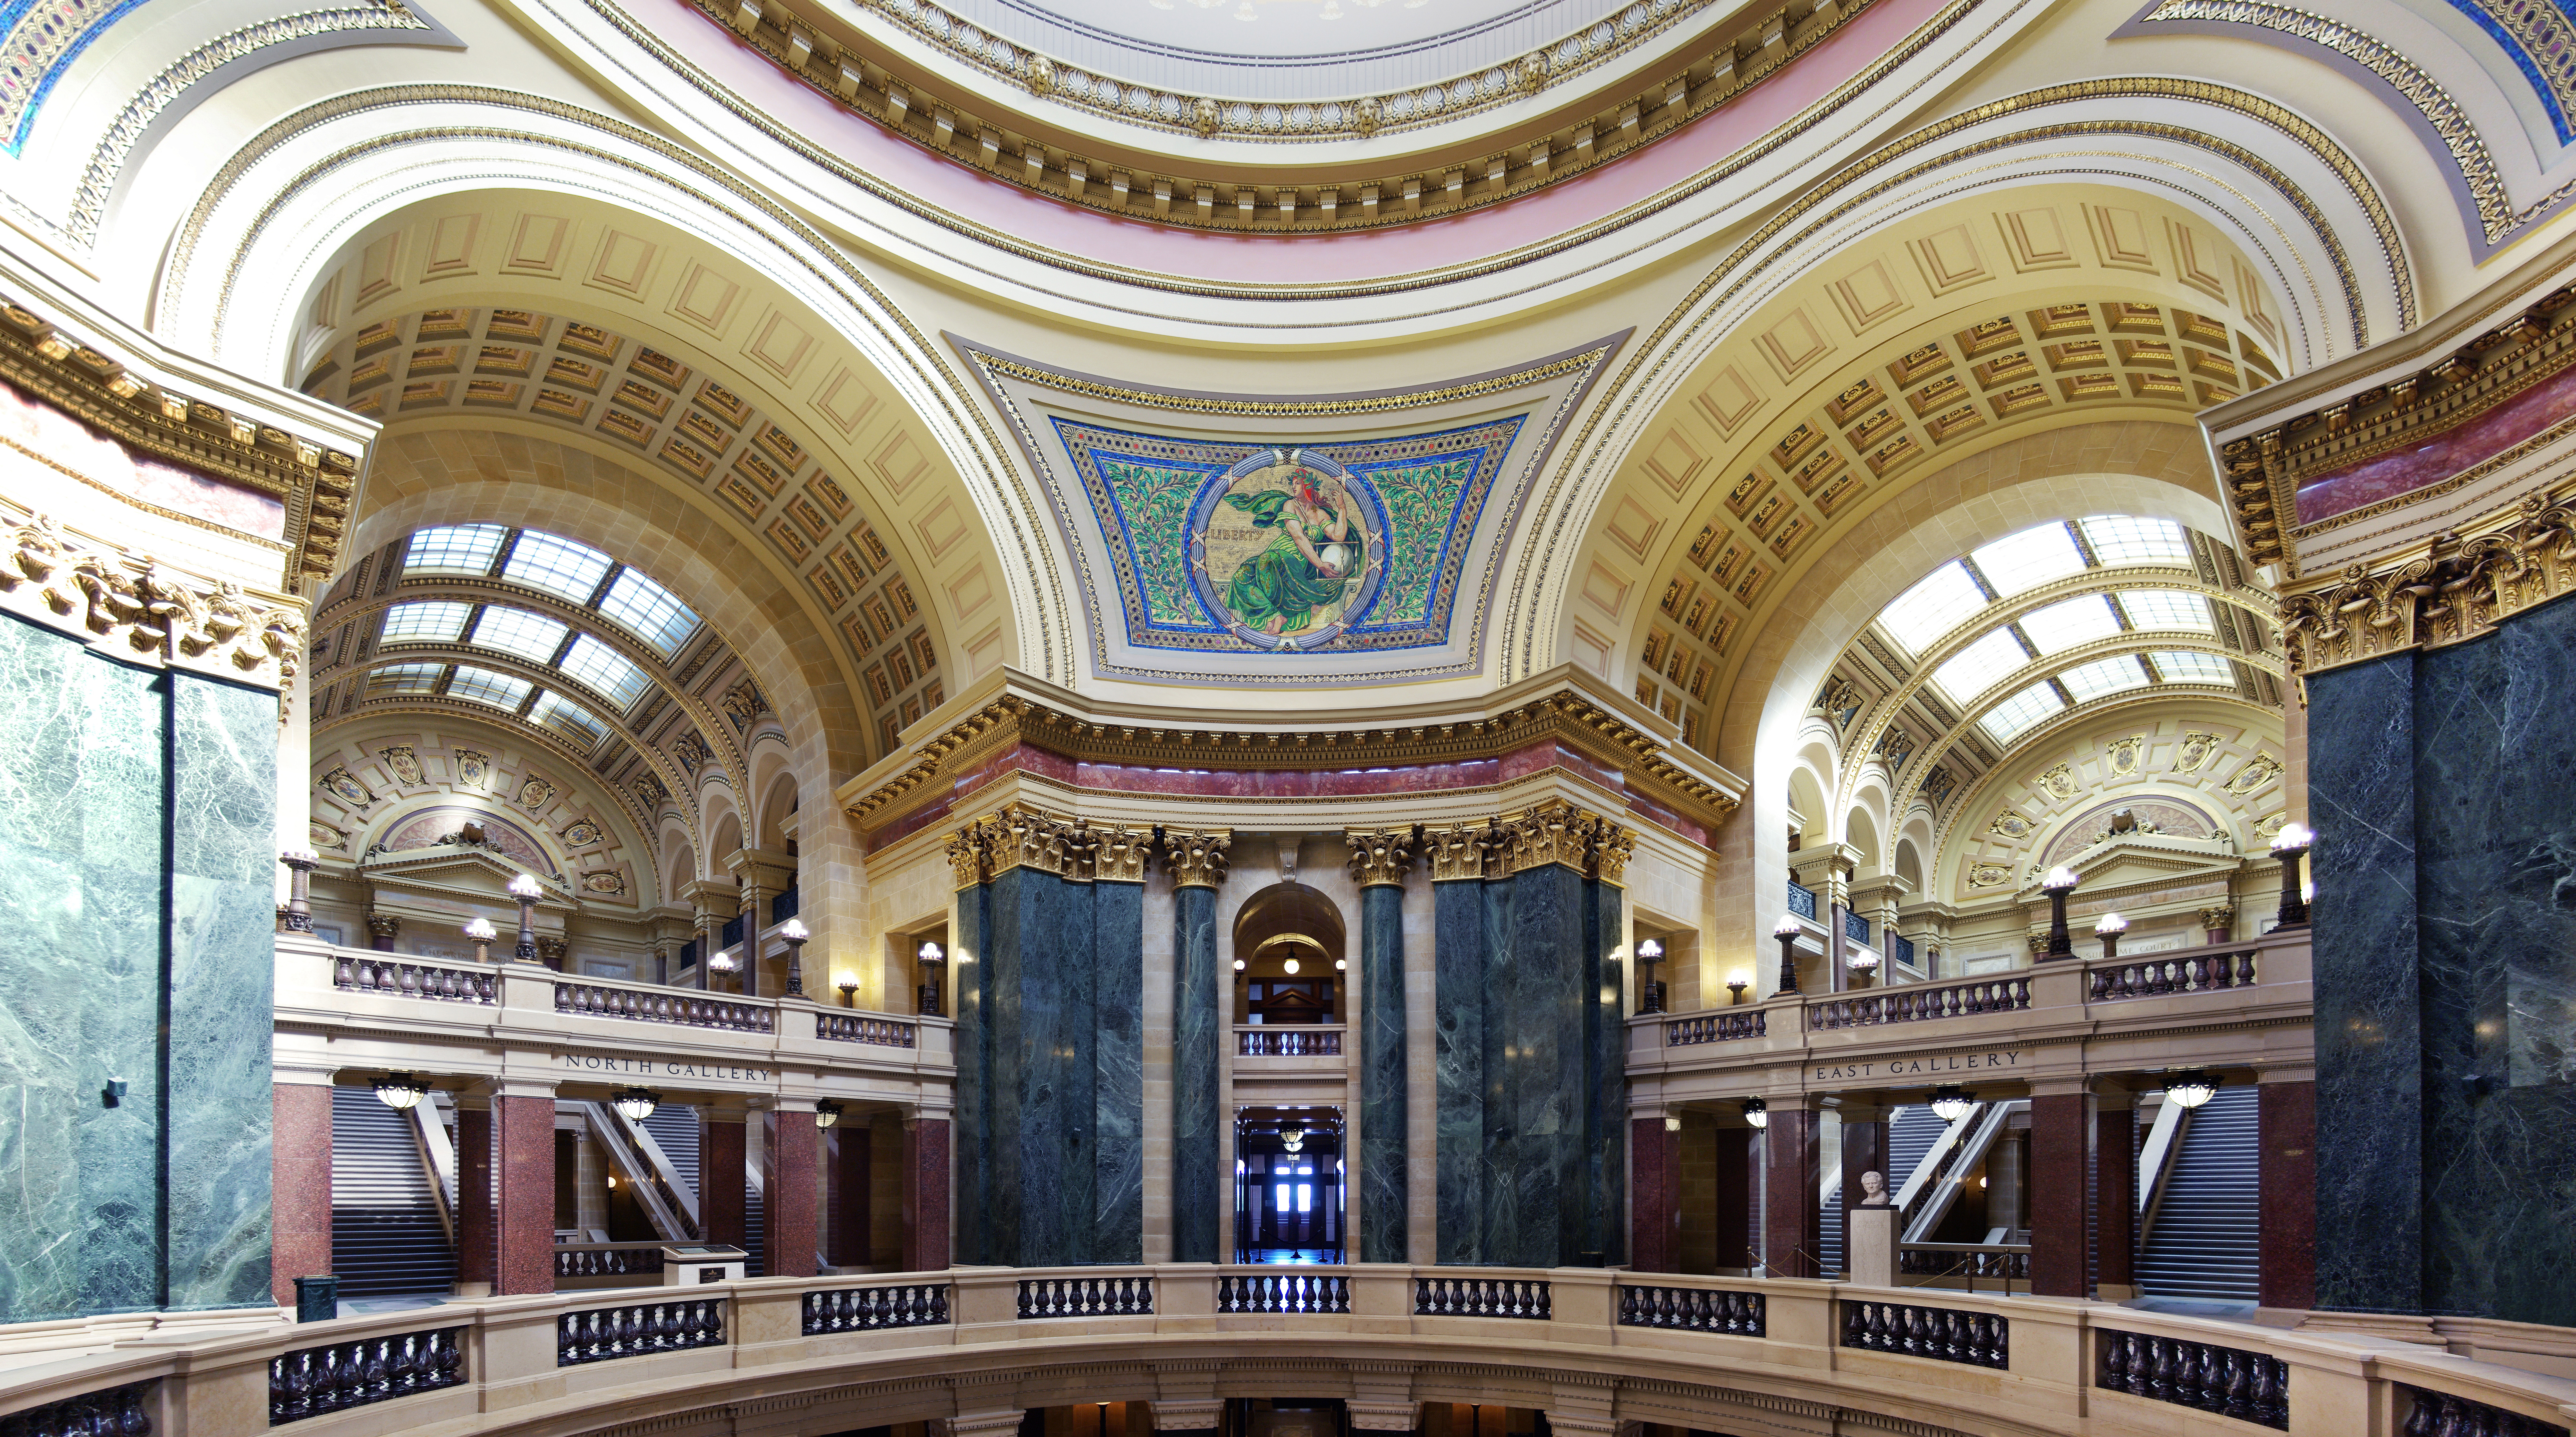 FileWisconsin State Capitol Dome Interior Panorama